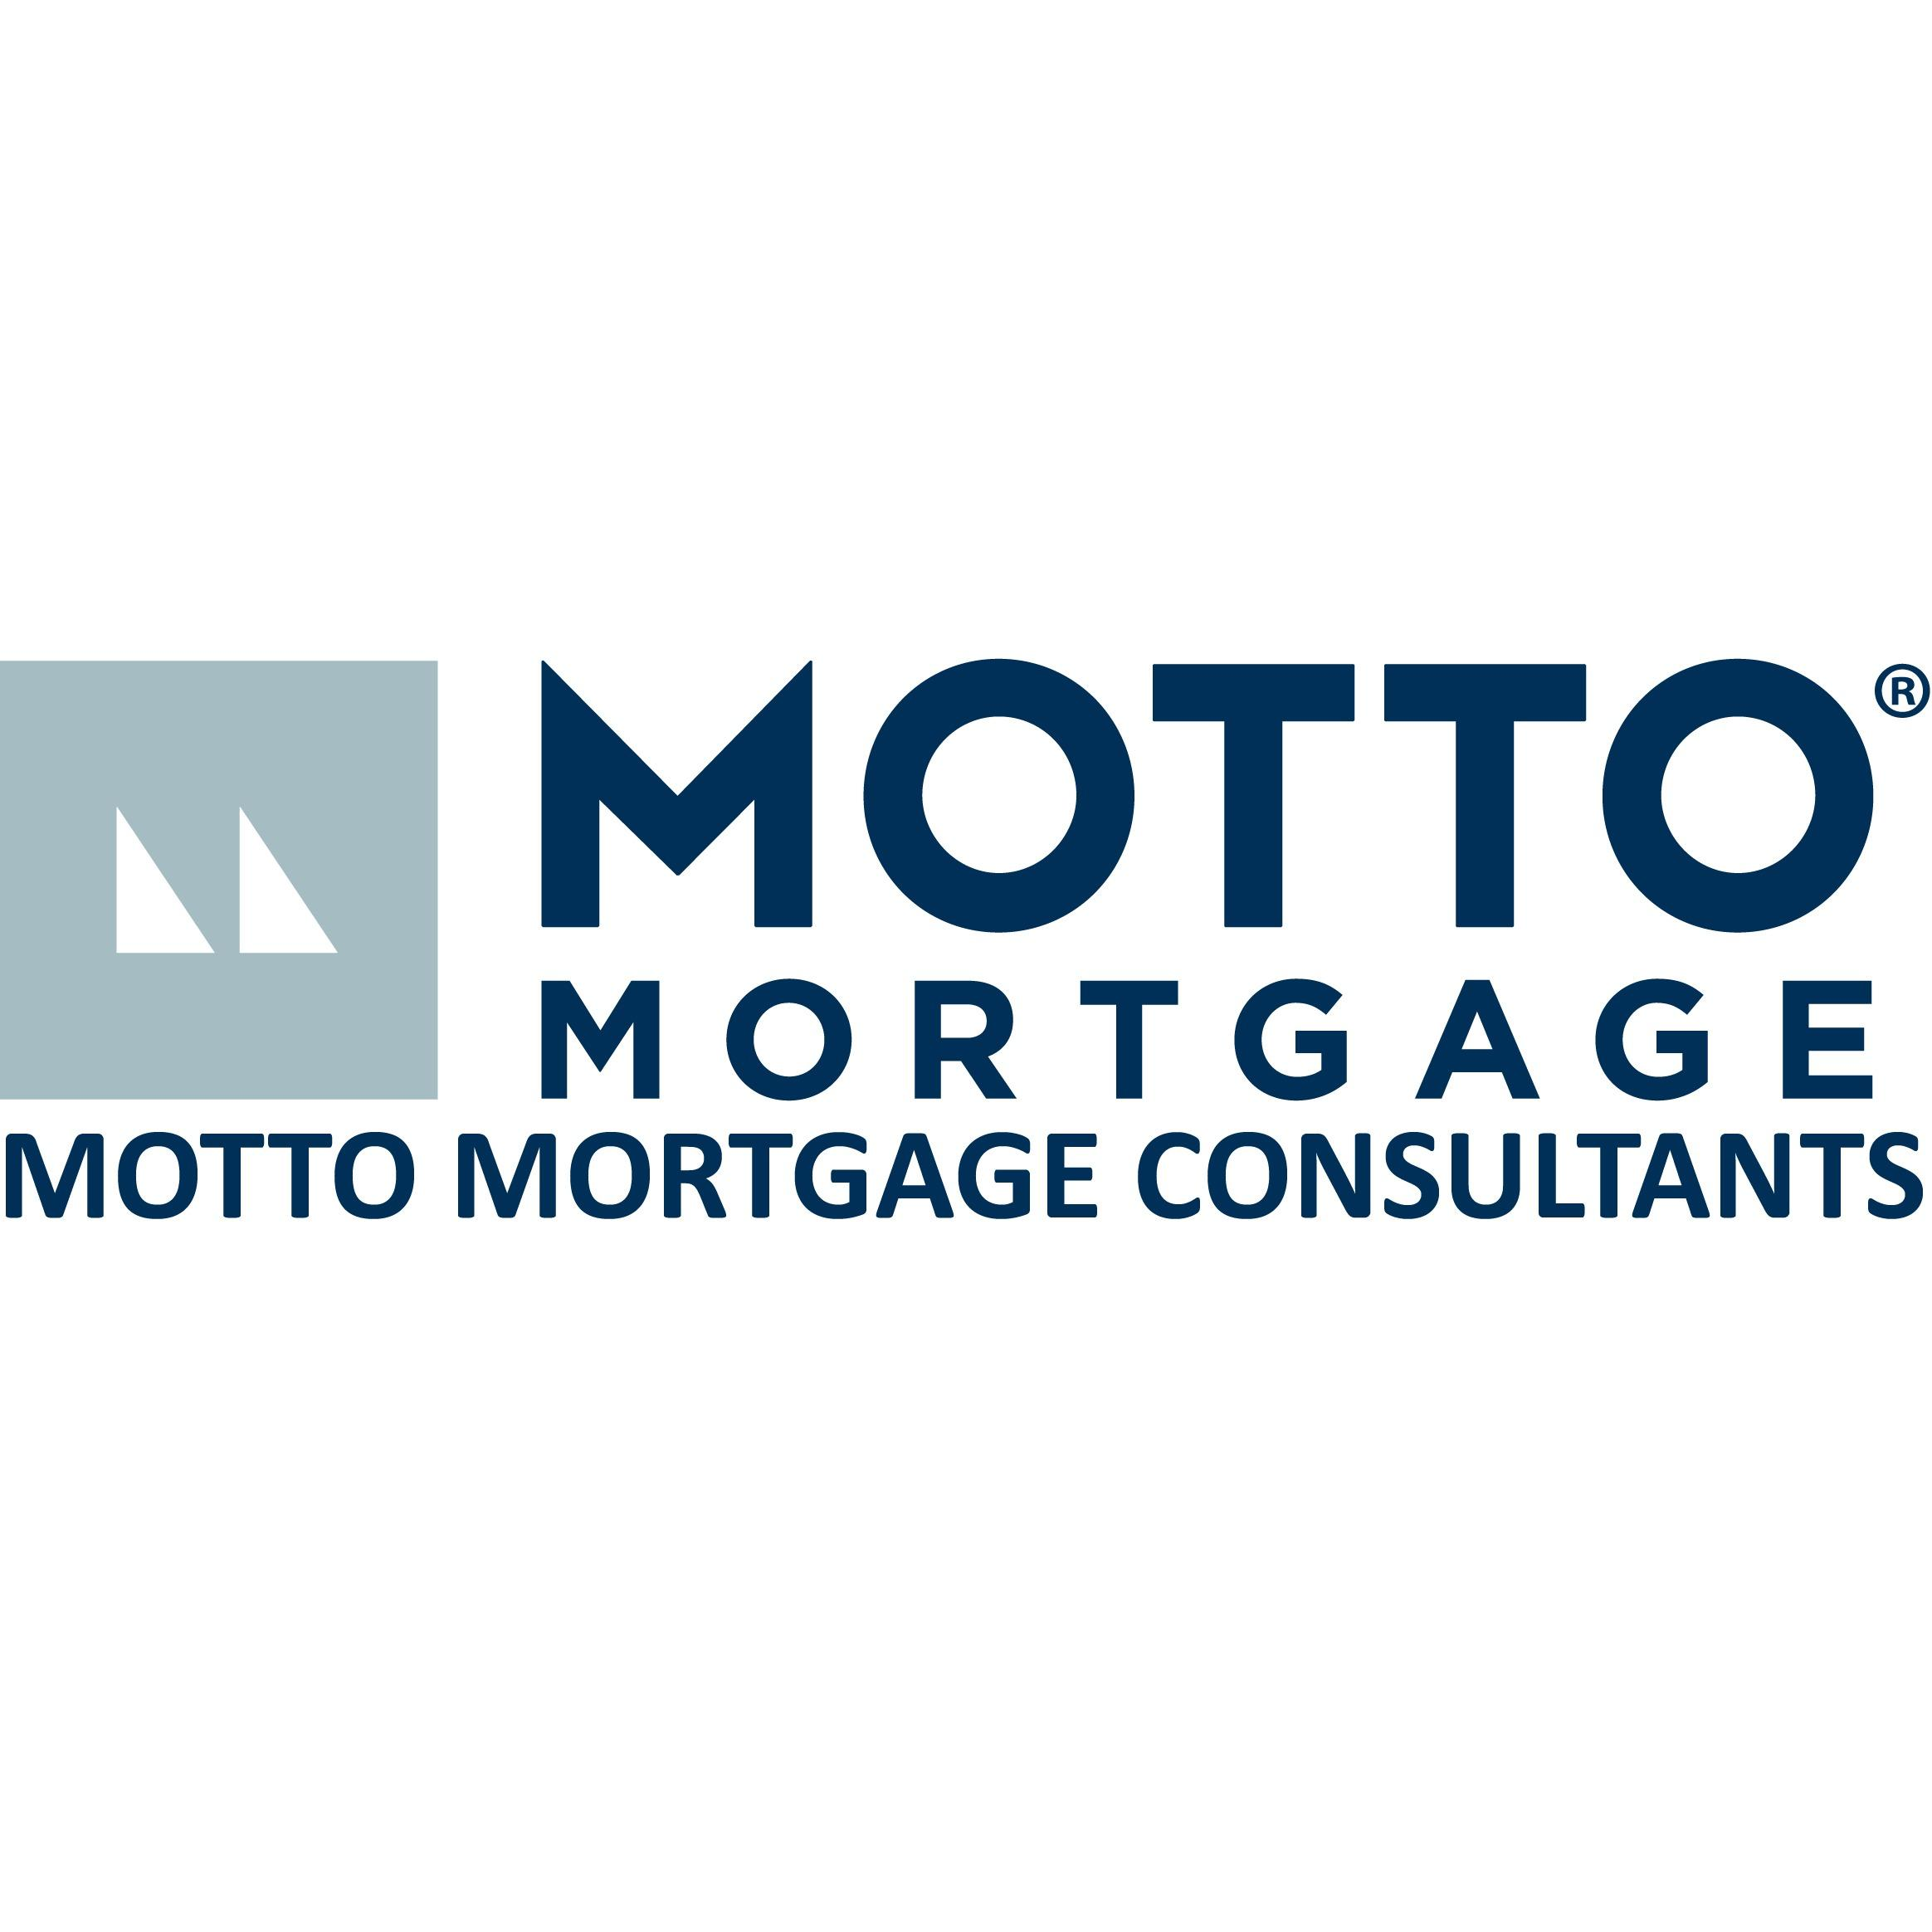 Motto Mortgage Consultants - Sterling Heights, MI 48313 - (586)580-3559 | ShowMeLocal.com